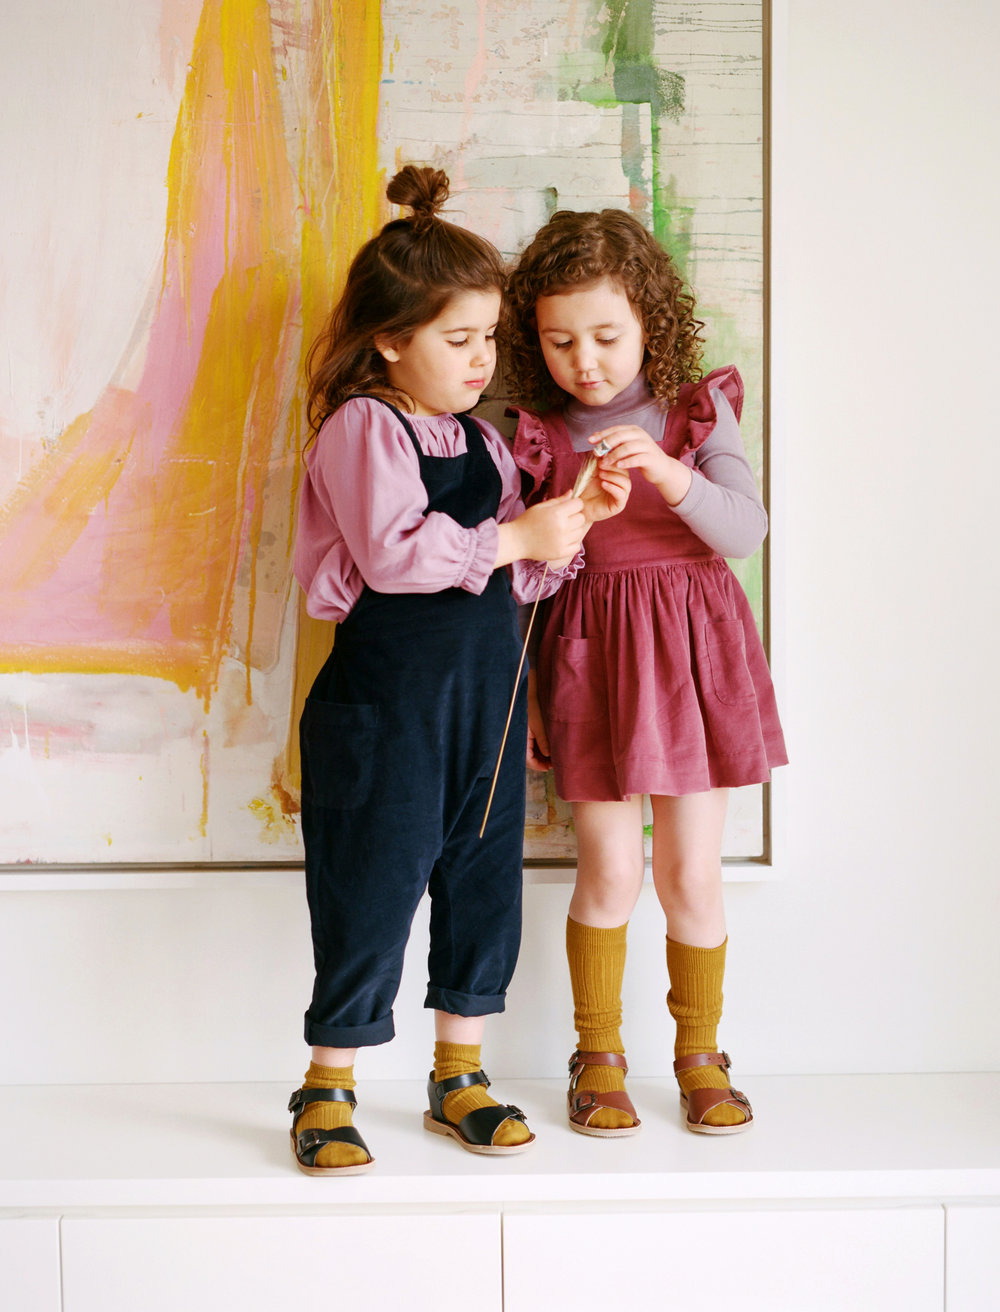 ClaudeOveralls_Navy_MargauxTunic_WildRose_InesPinafore_Rose_ClemenceTurtleneck_Mauve.jpg